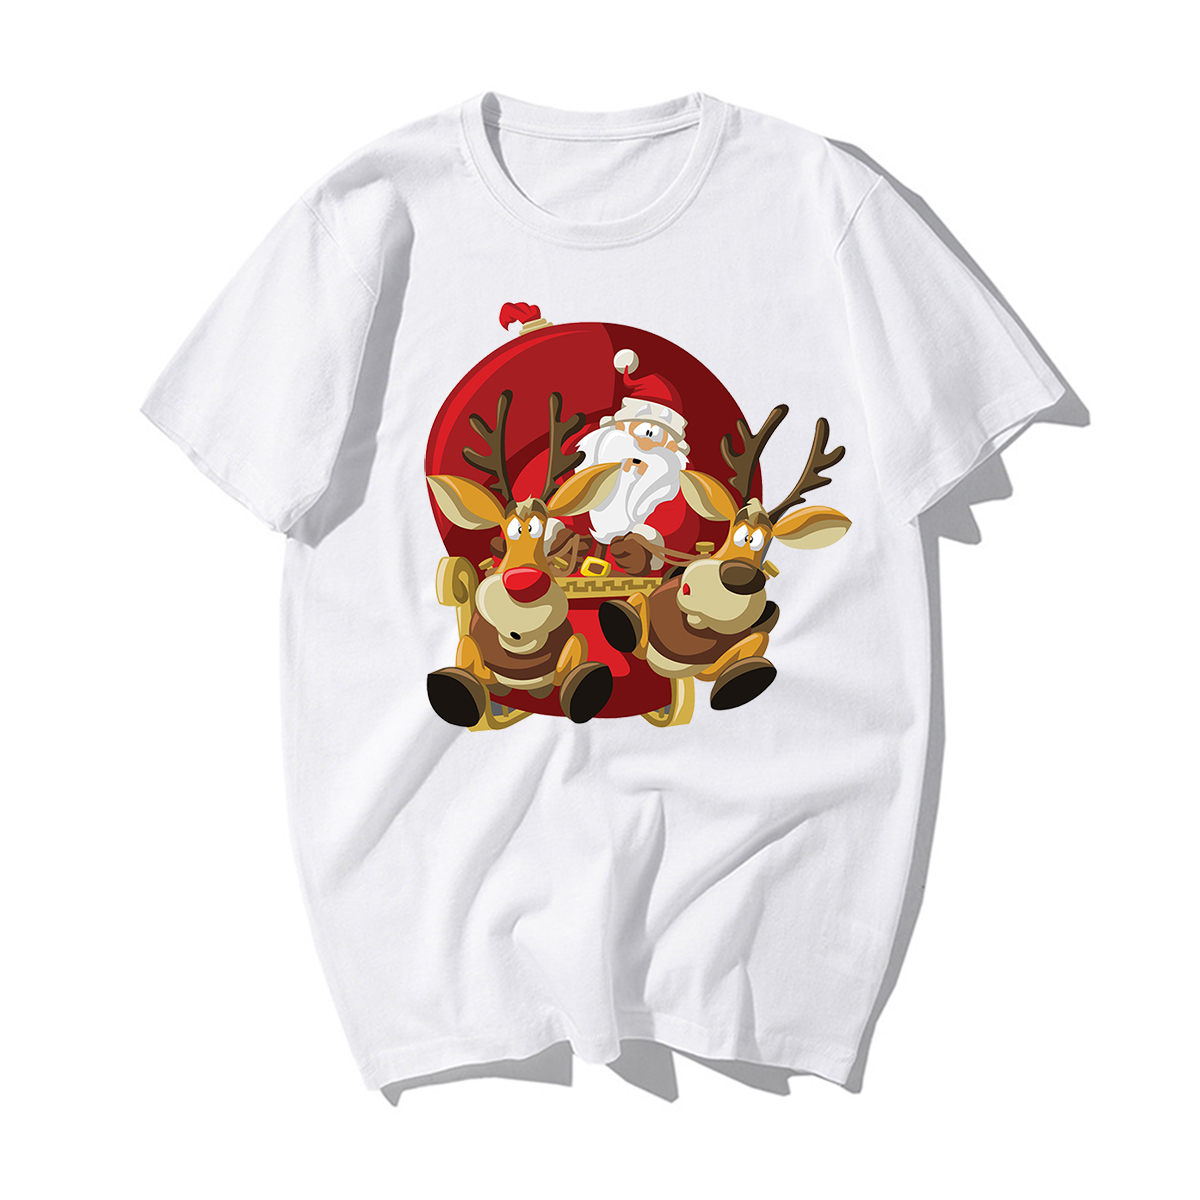 Funny Santa Claus Reindeer T-Shirt Happy New Year T-shirts Men Merry Christmas Tshirts Casual Cotton Xmas Lovers Gift Tshirt Men